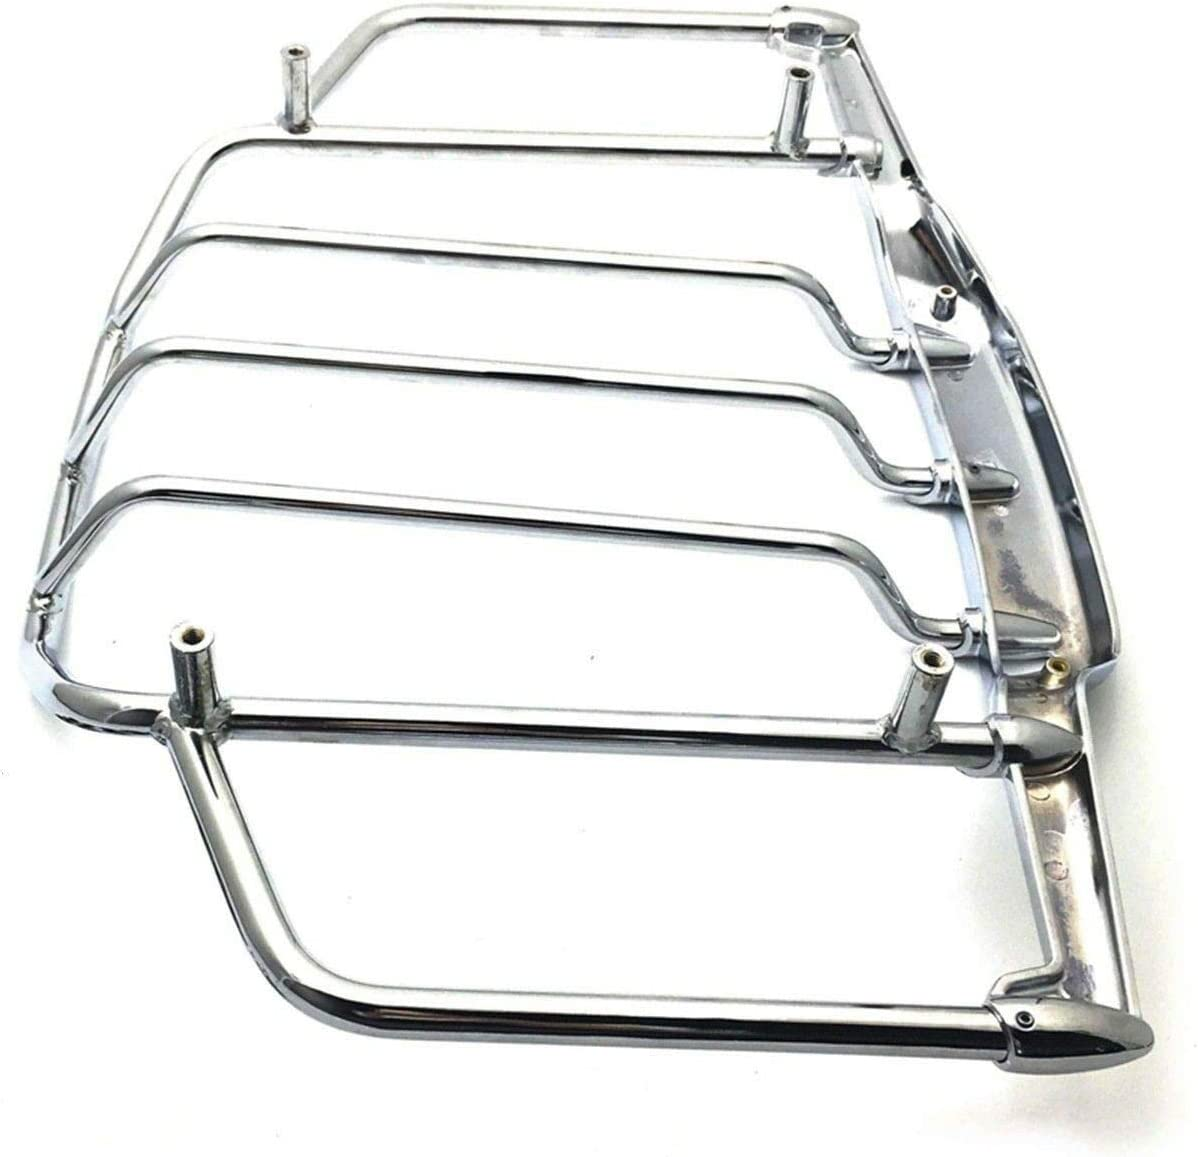 BBUT Chrome LED Lighted Airwing /& Luggage Rack For Harley-Davidson Tour Pak Trunk Pack 1993-2013 1994 1995 1996 1997 1998 1999 2000 2001 2002 2003 2004 2005 2006 2007 2008 2009 2010 2011 2012